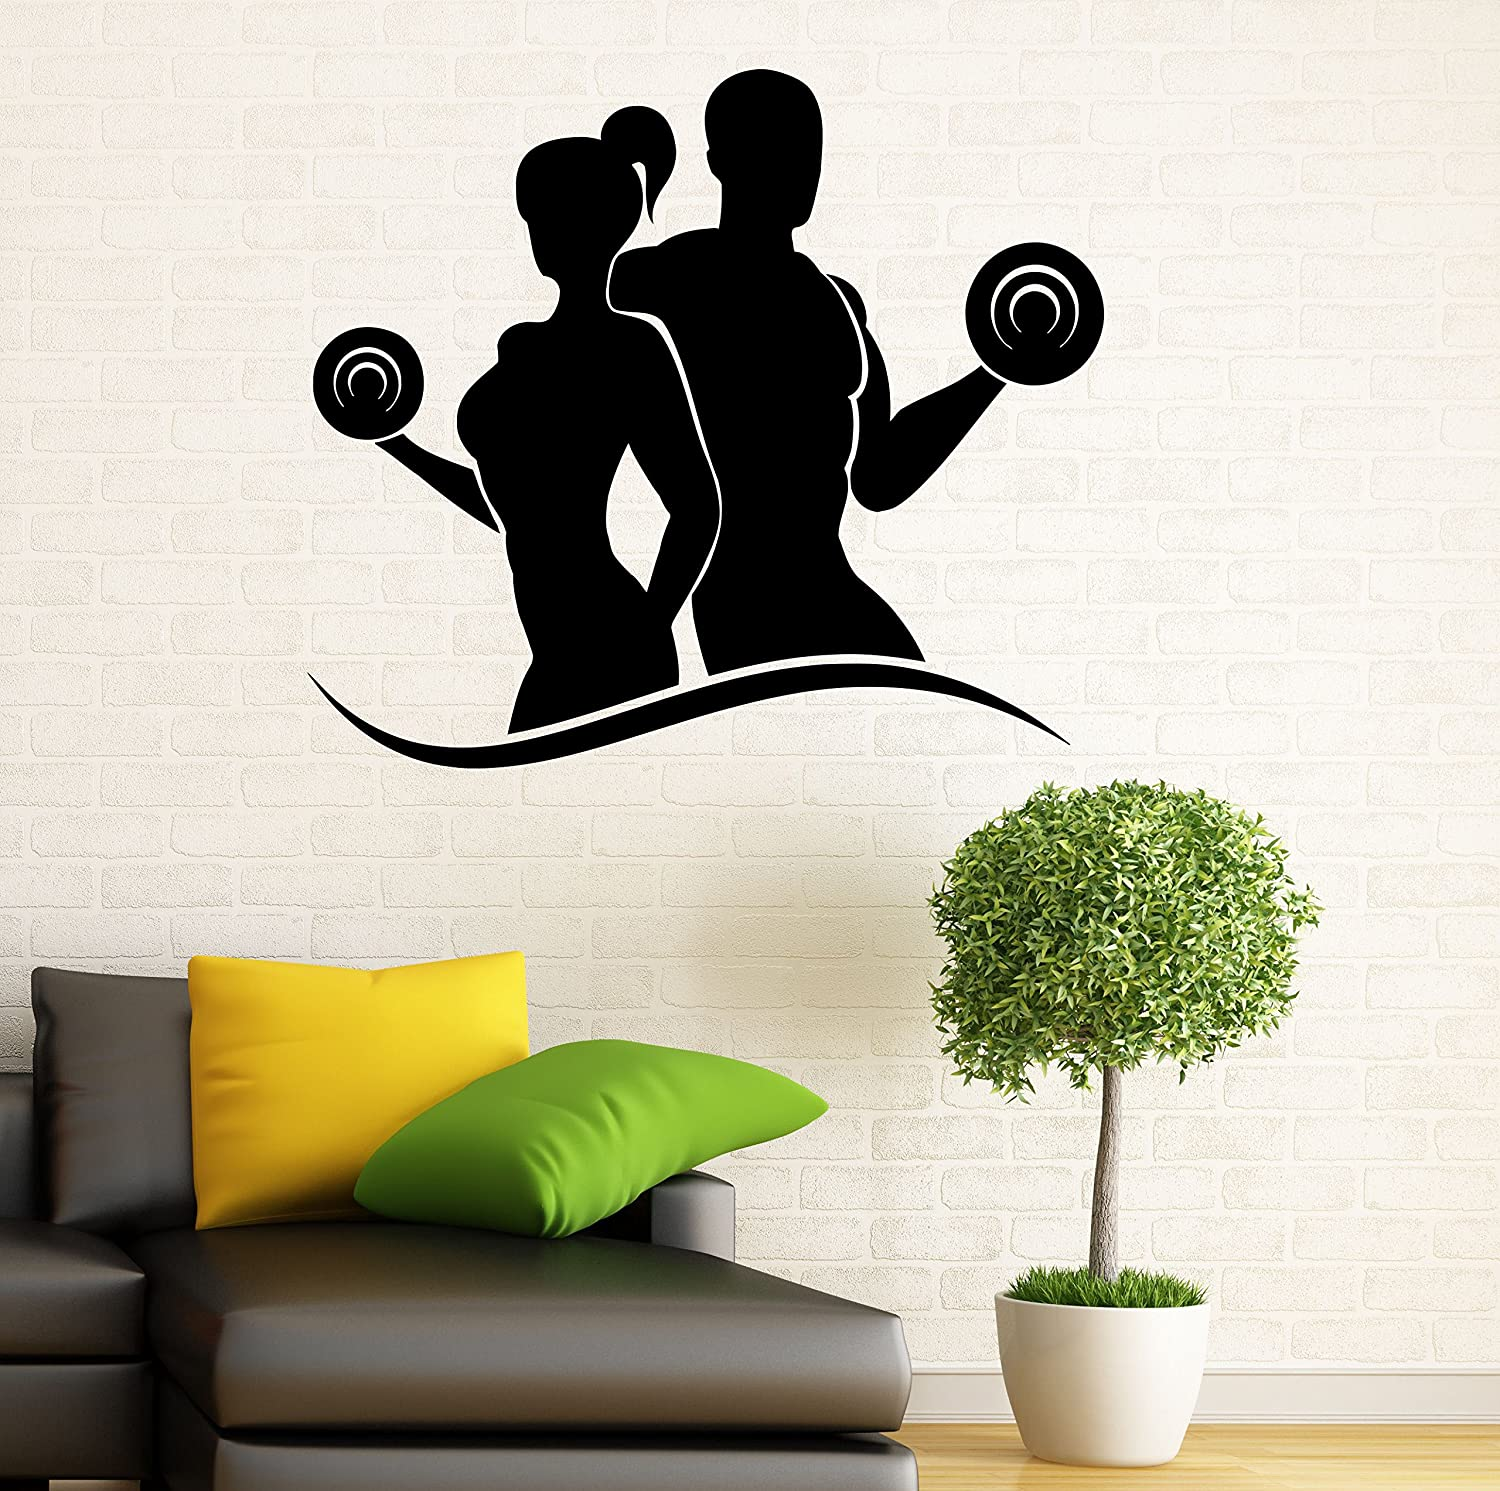 Fitness wall decal gym wall vinyl sticker sport healthy living interior home art wall murals bedroom home decor 2f01s amazon com